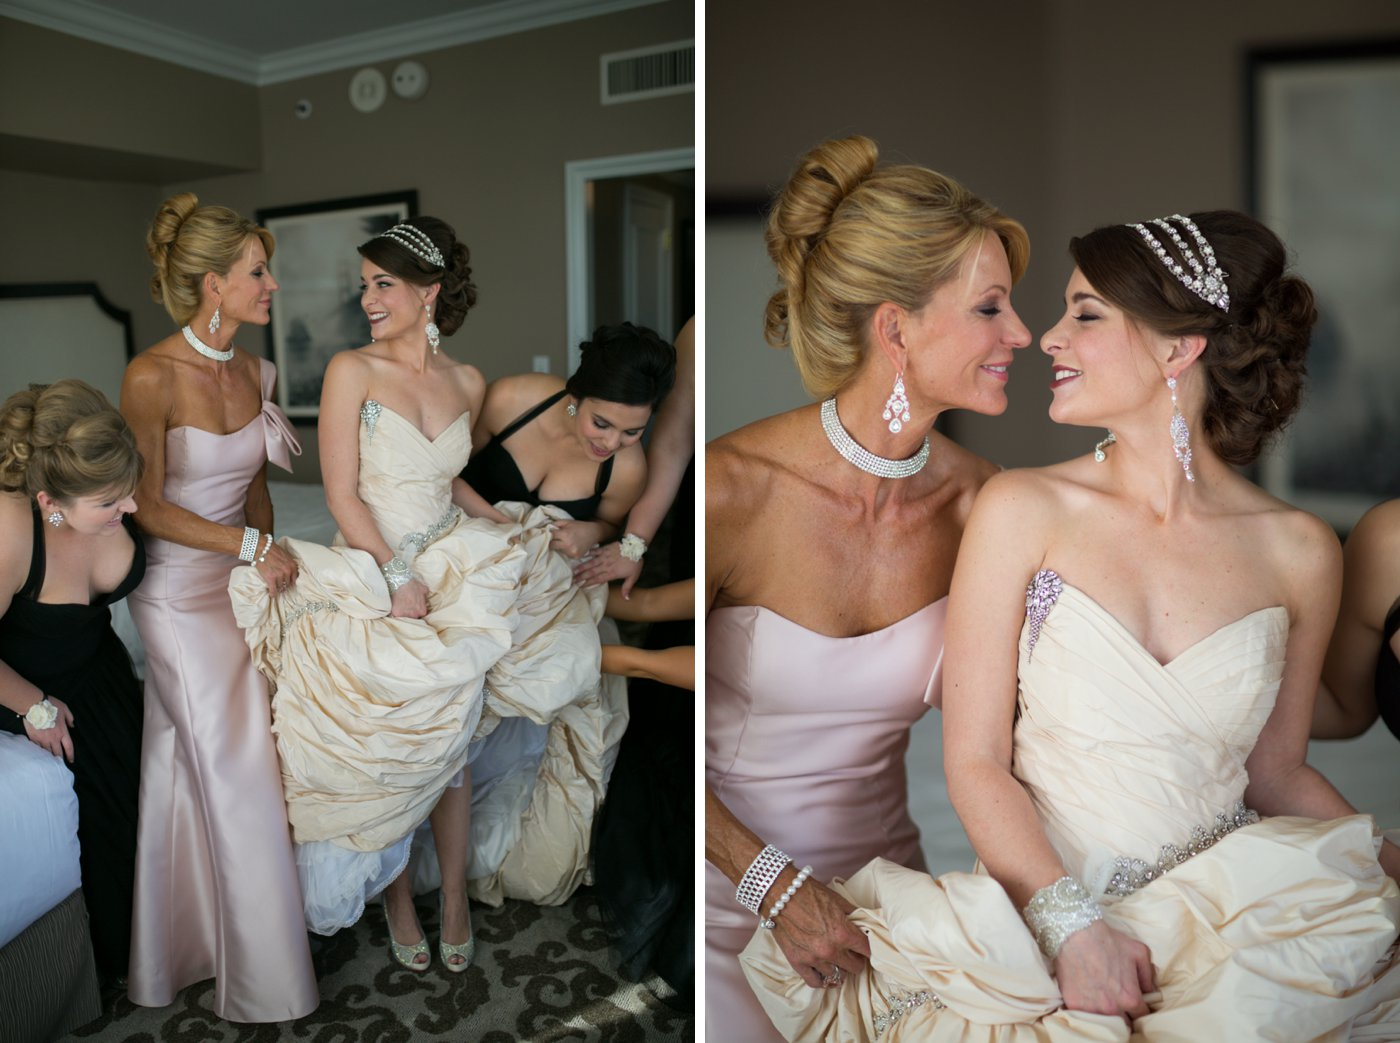 Bride and bridesmaids getting ready during a wedding at the Fairmont Hotel in San Francisco